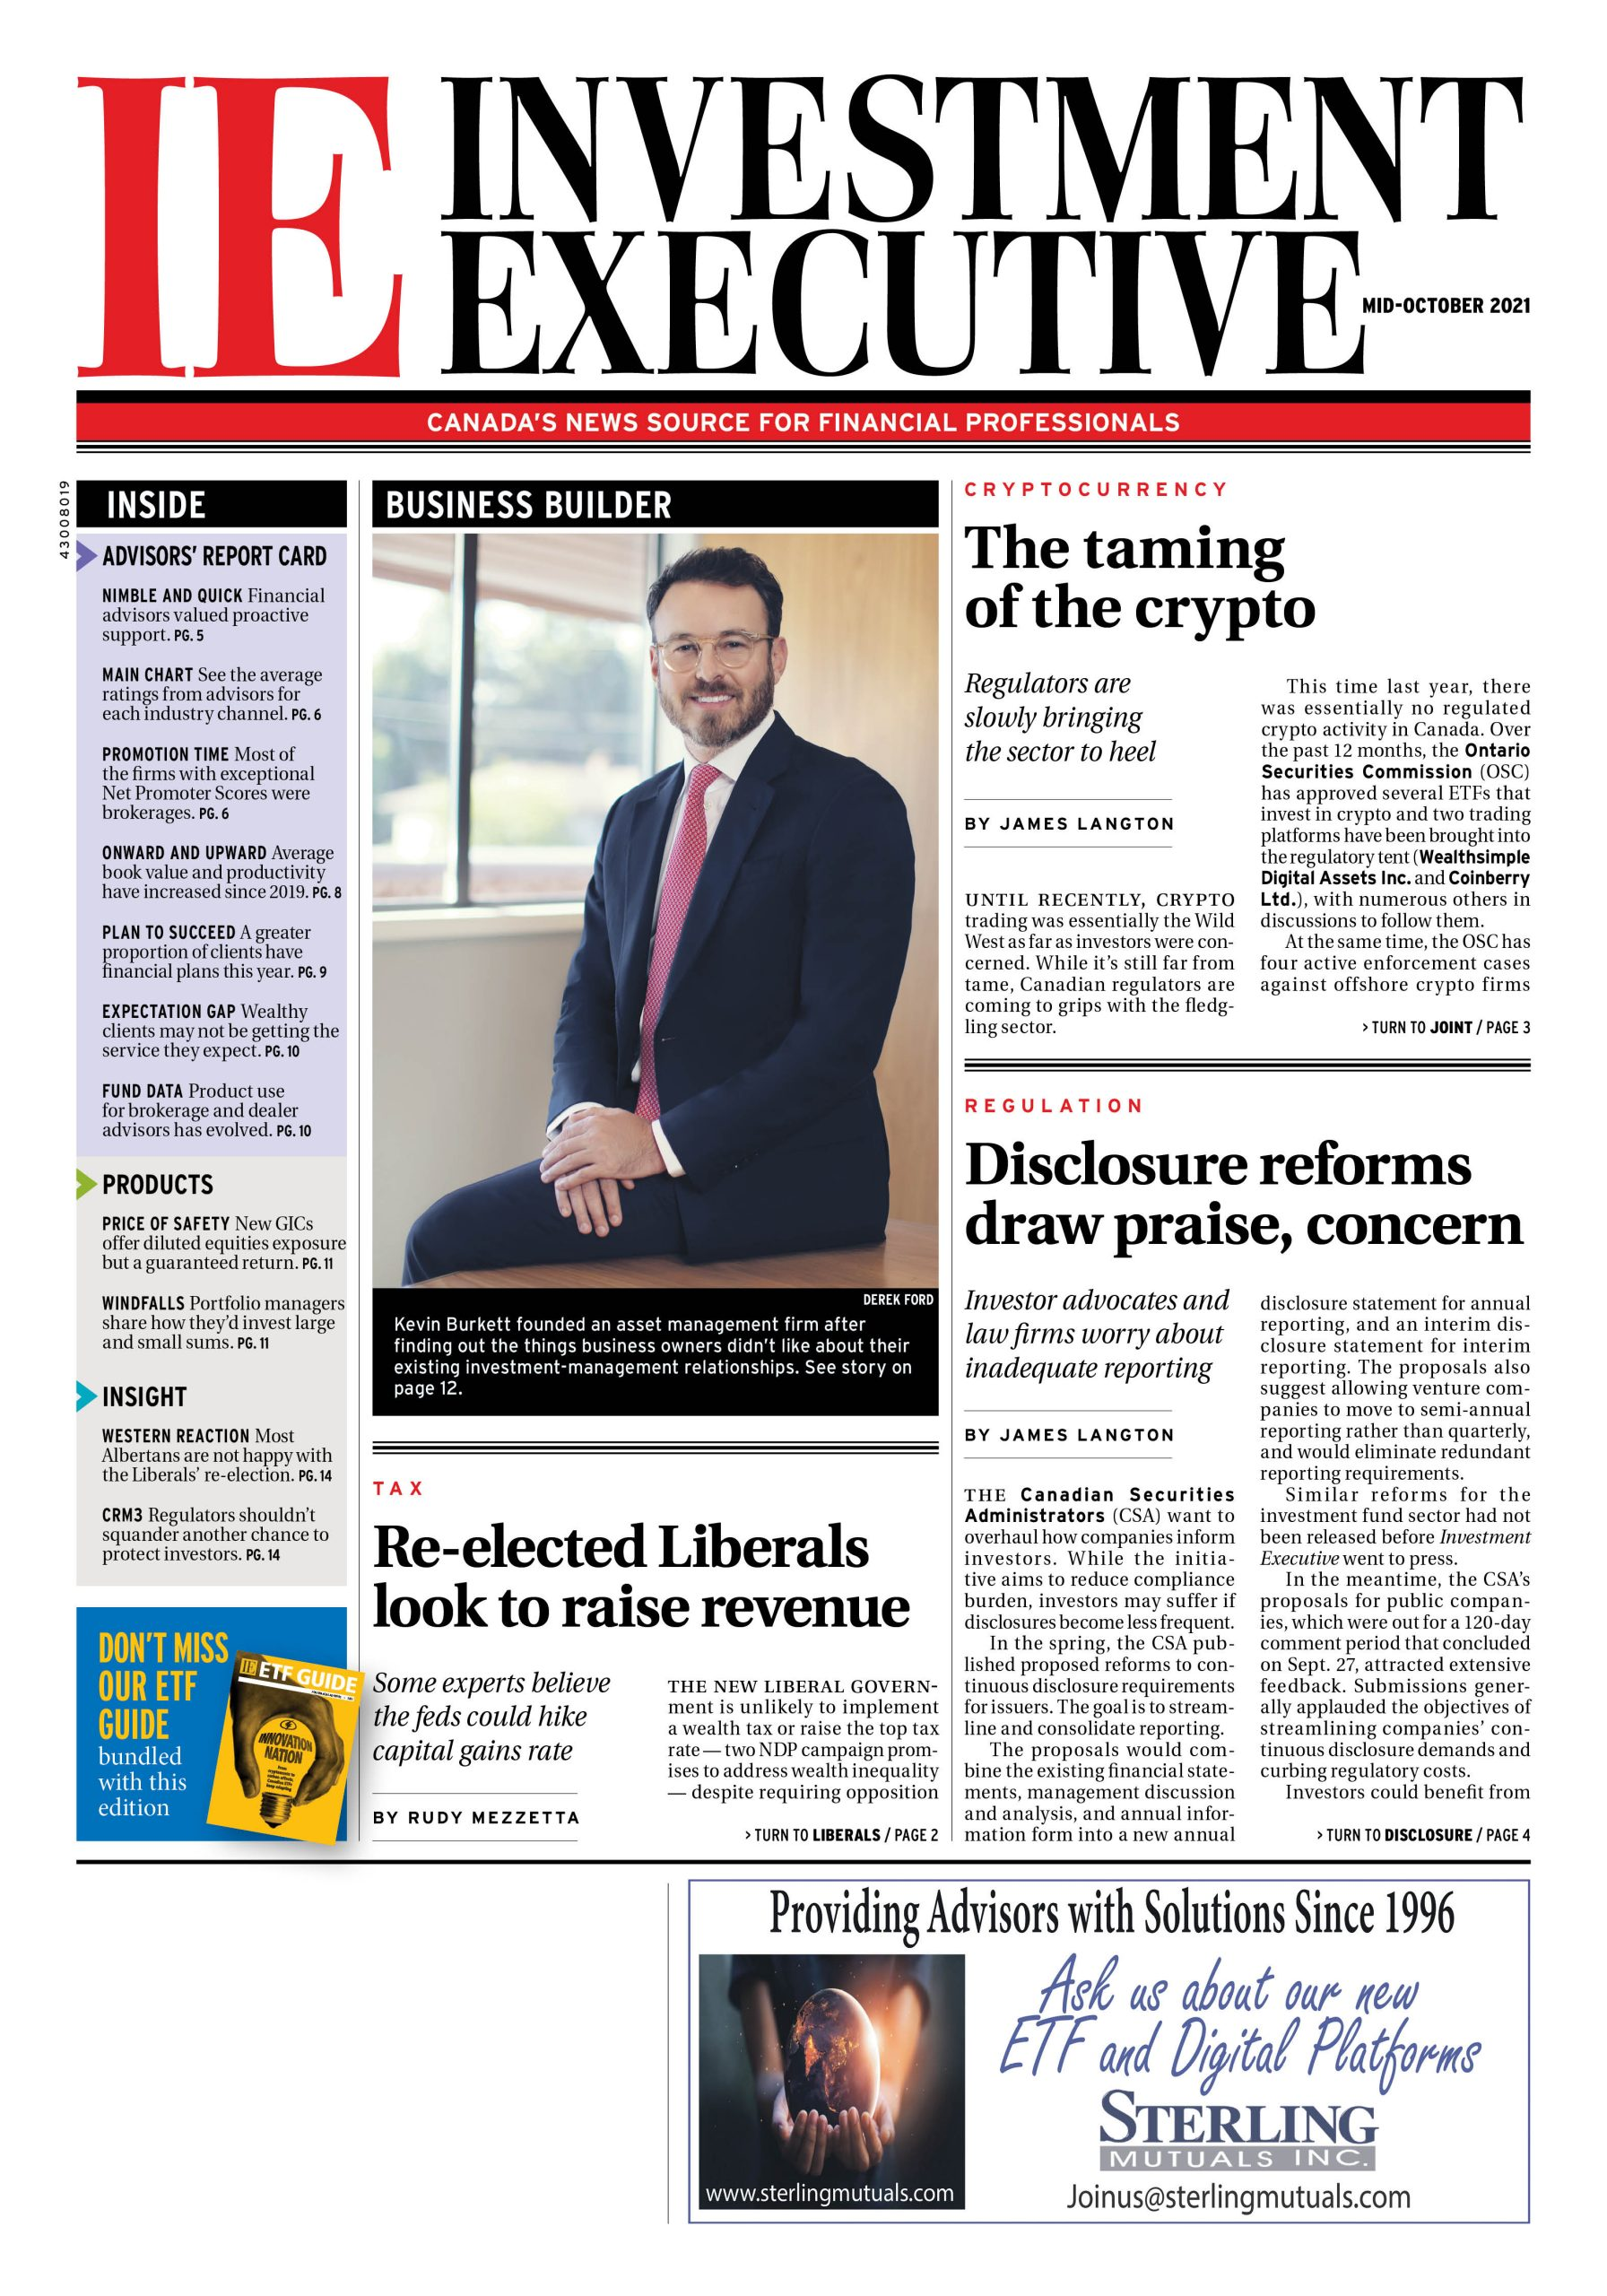 IE Mid-October newspaper cover page